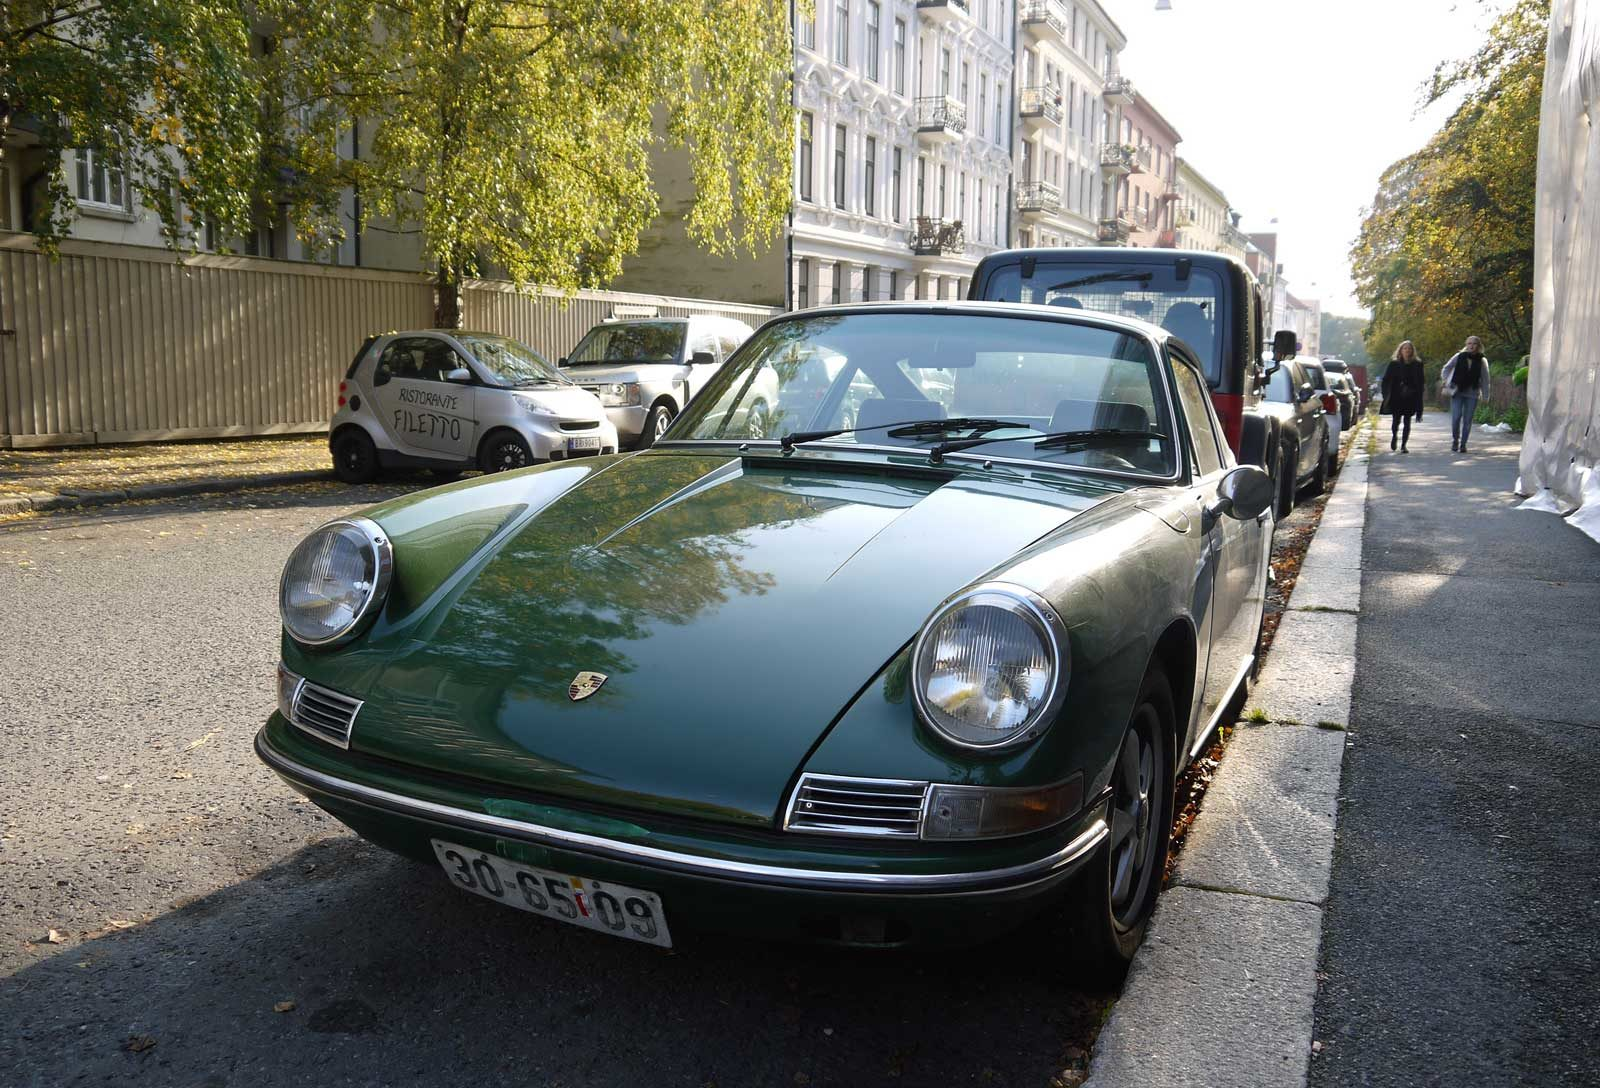 1966 Porsche 912 coupe air-cooled